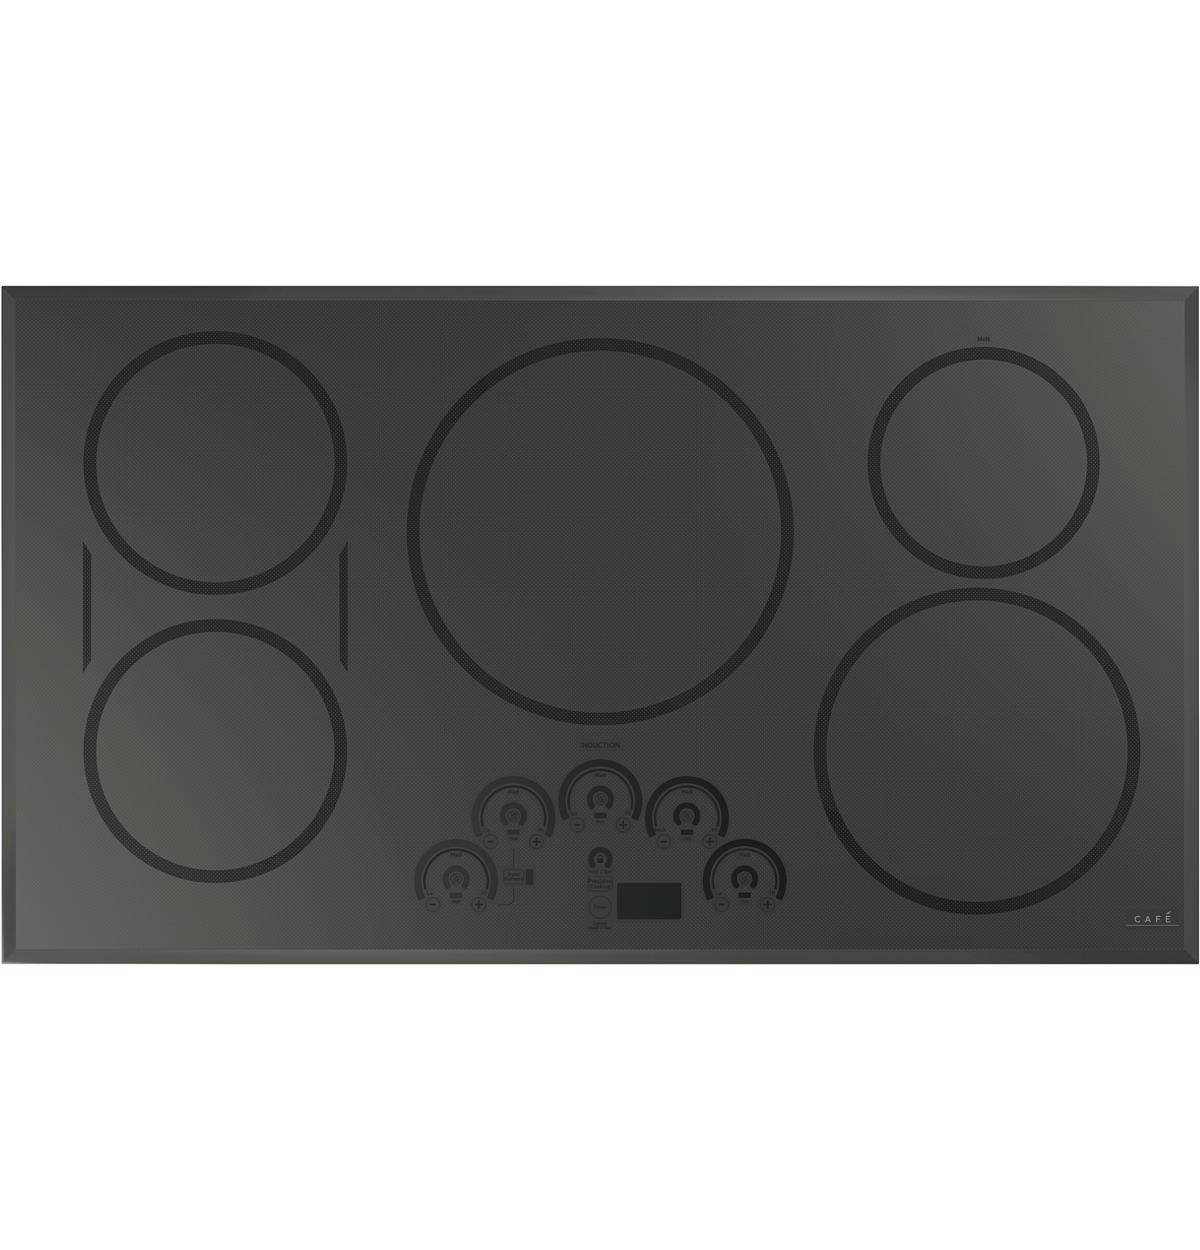 "Café™ 36"" Built-In Touch Control Induction Cooktop"